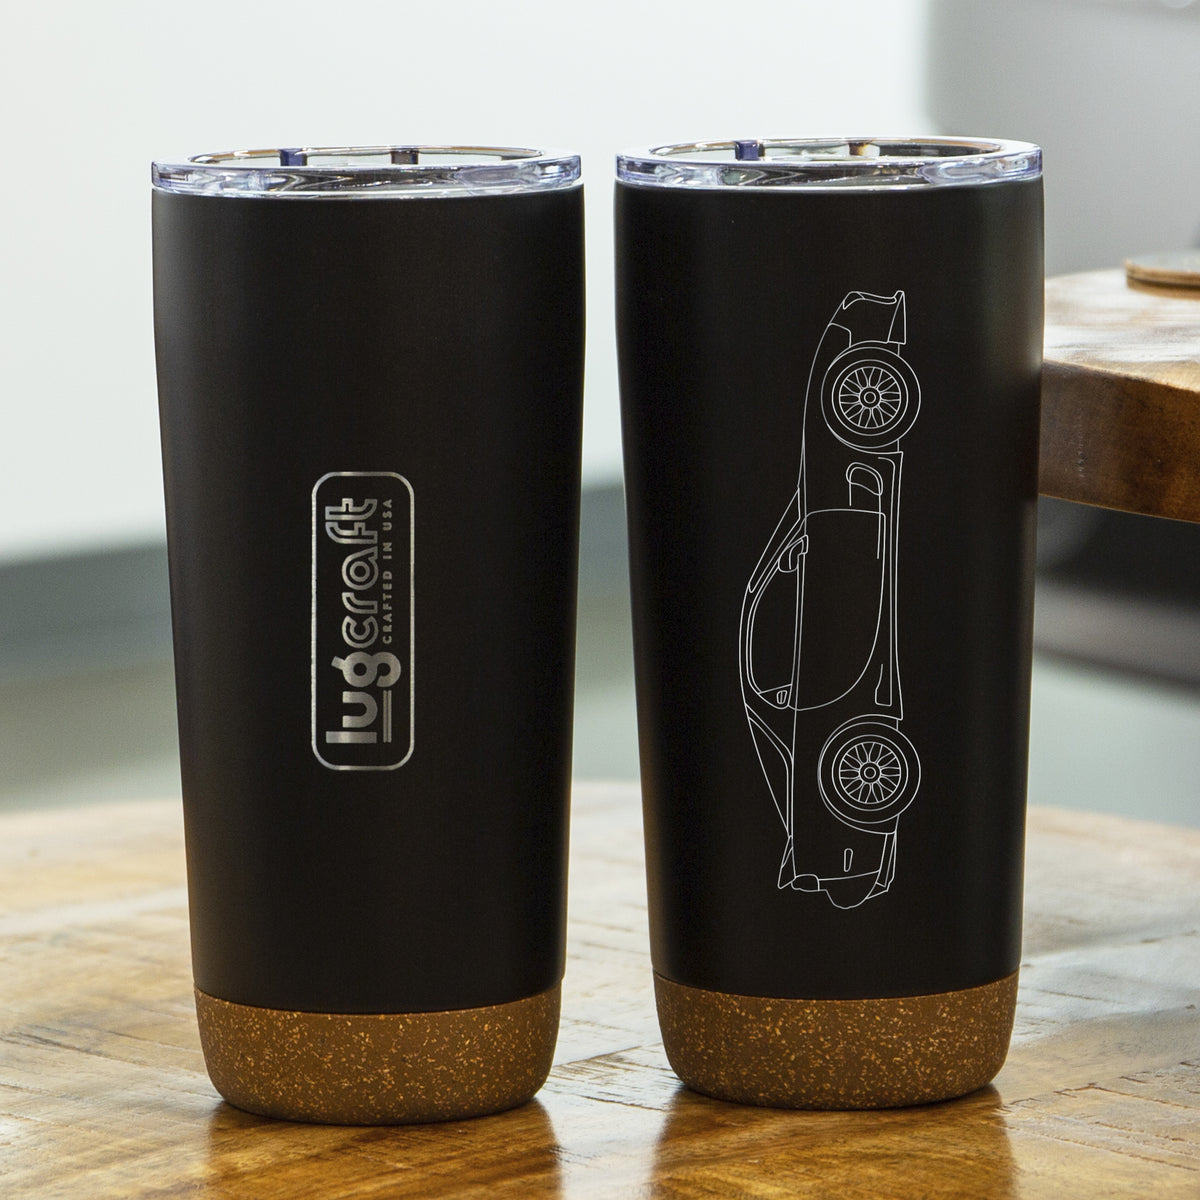 Mazda RX7 FD Insulated Stainless Steel Coffee Tumbler - 20 oz